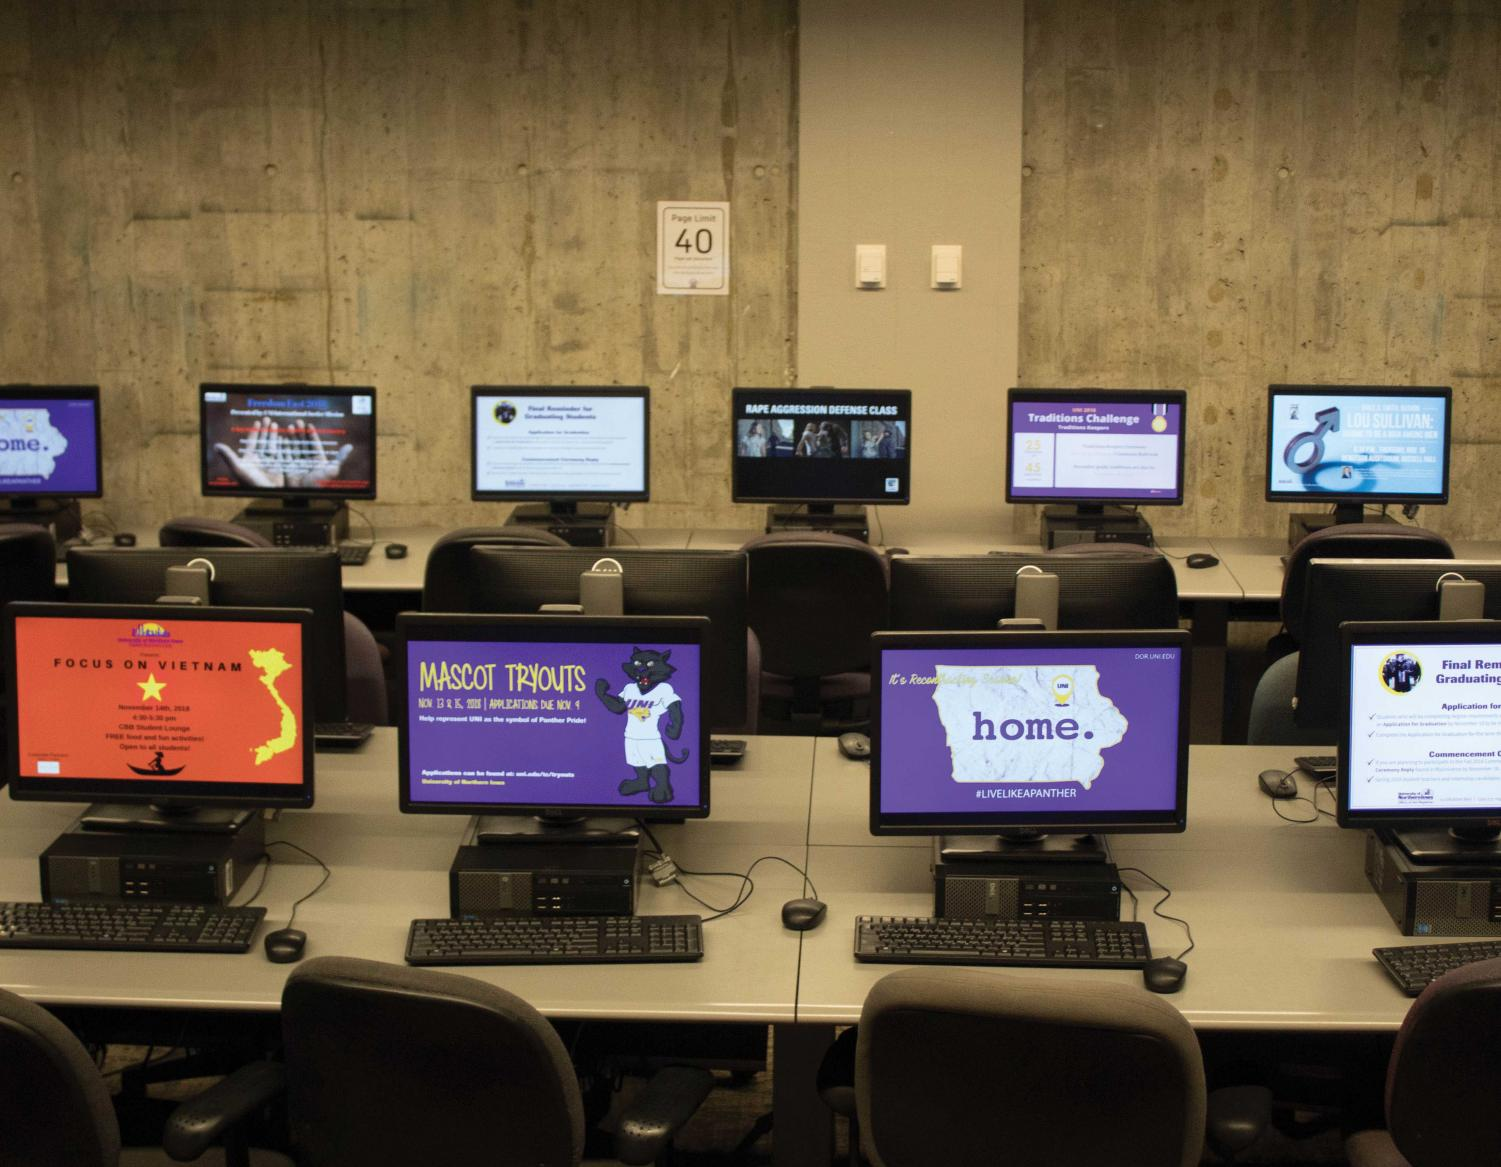 Due to declining student use, the university is considering renovating computer labs across campus.